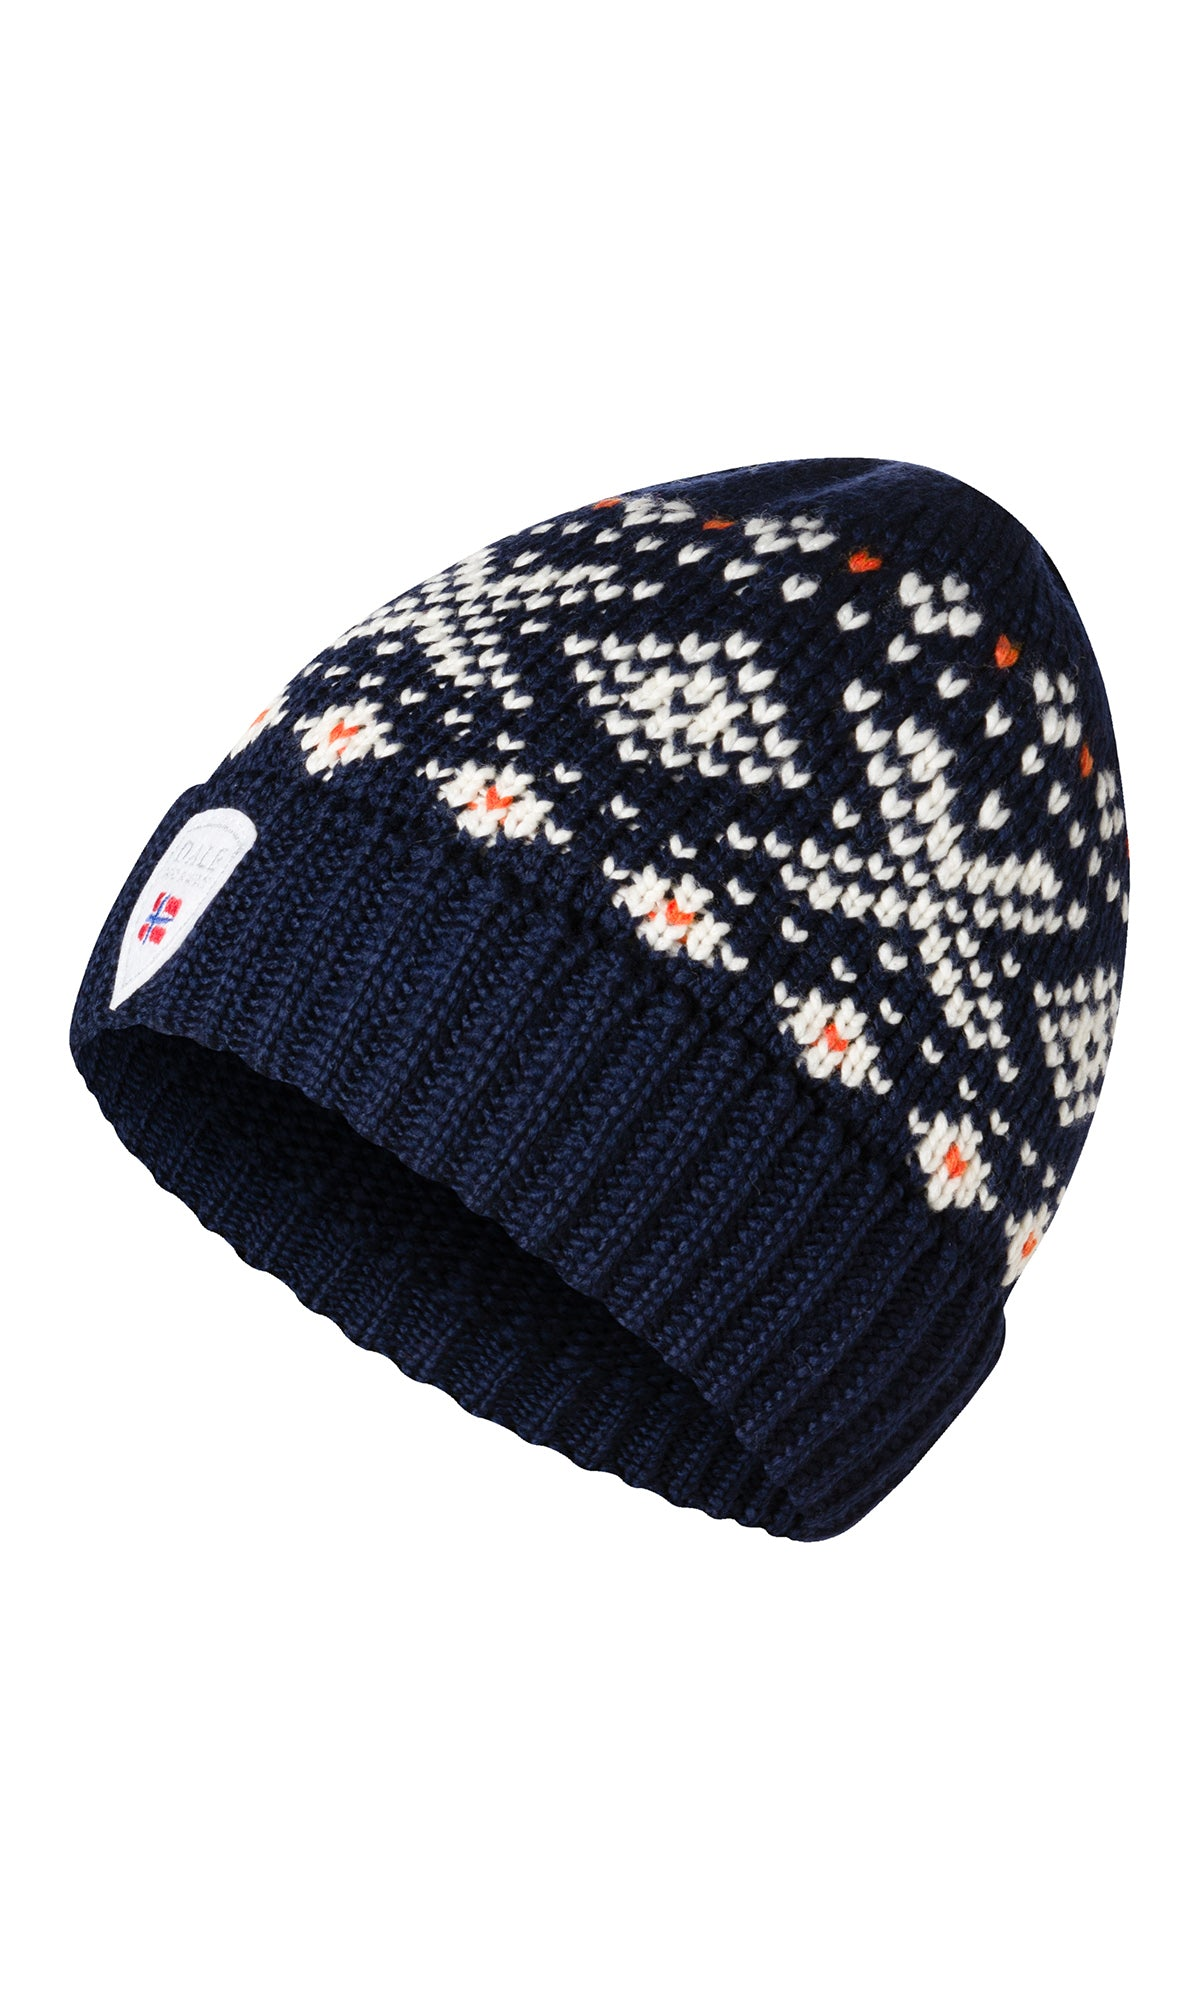 Dale of Norway - Snohetta Unisex Hat - Navy